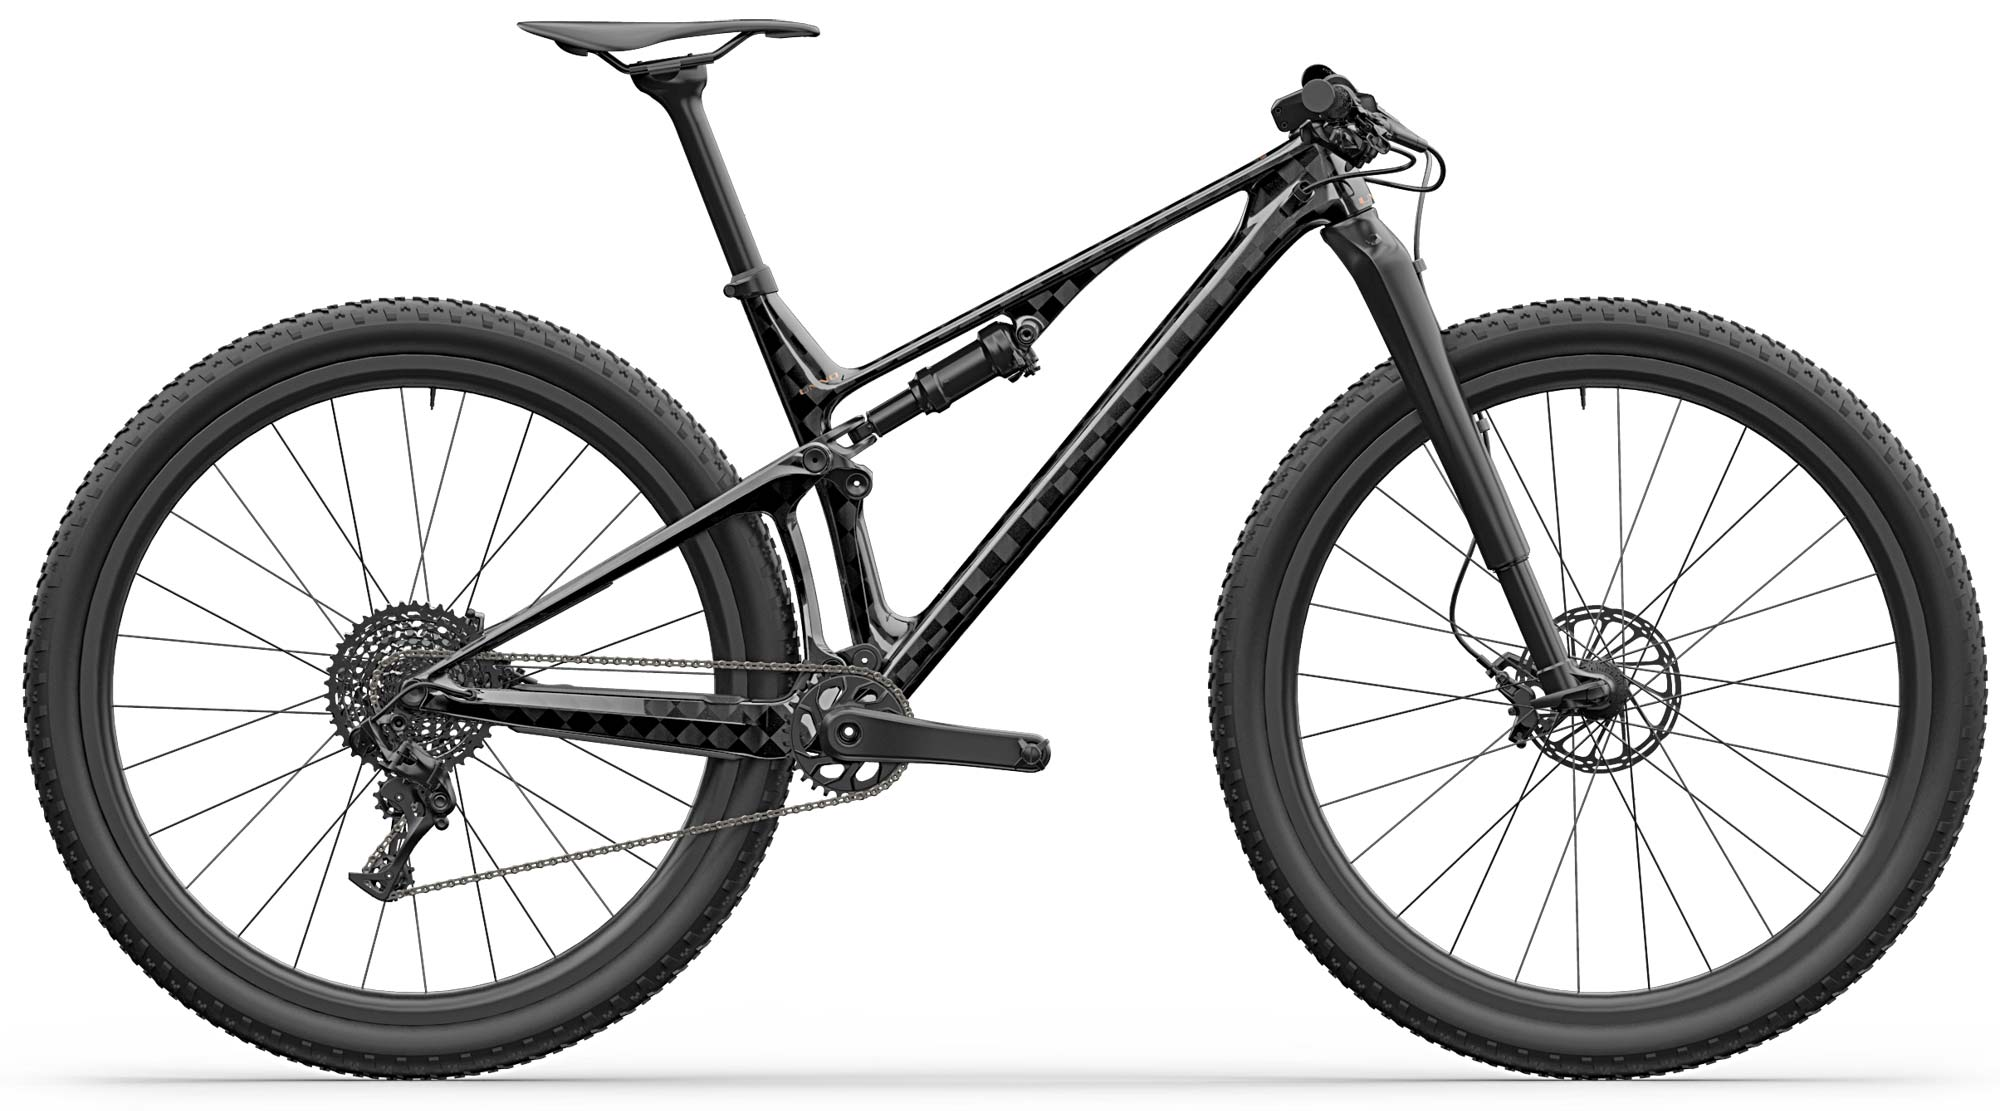 Unno Horn 100mm XC bike, limited edition lightweight carbon short-travel cross-country race mountain bike